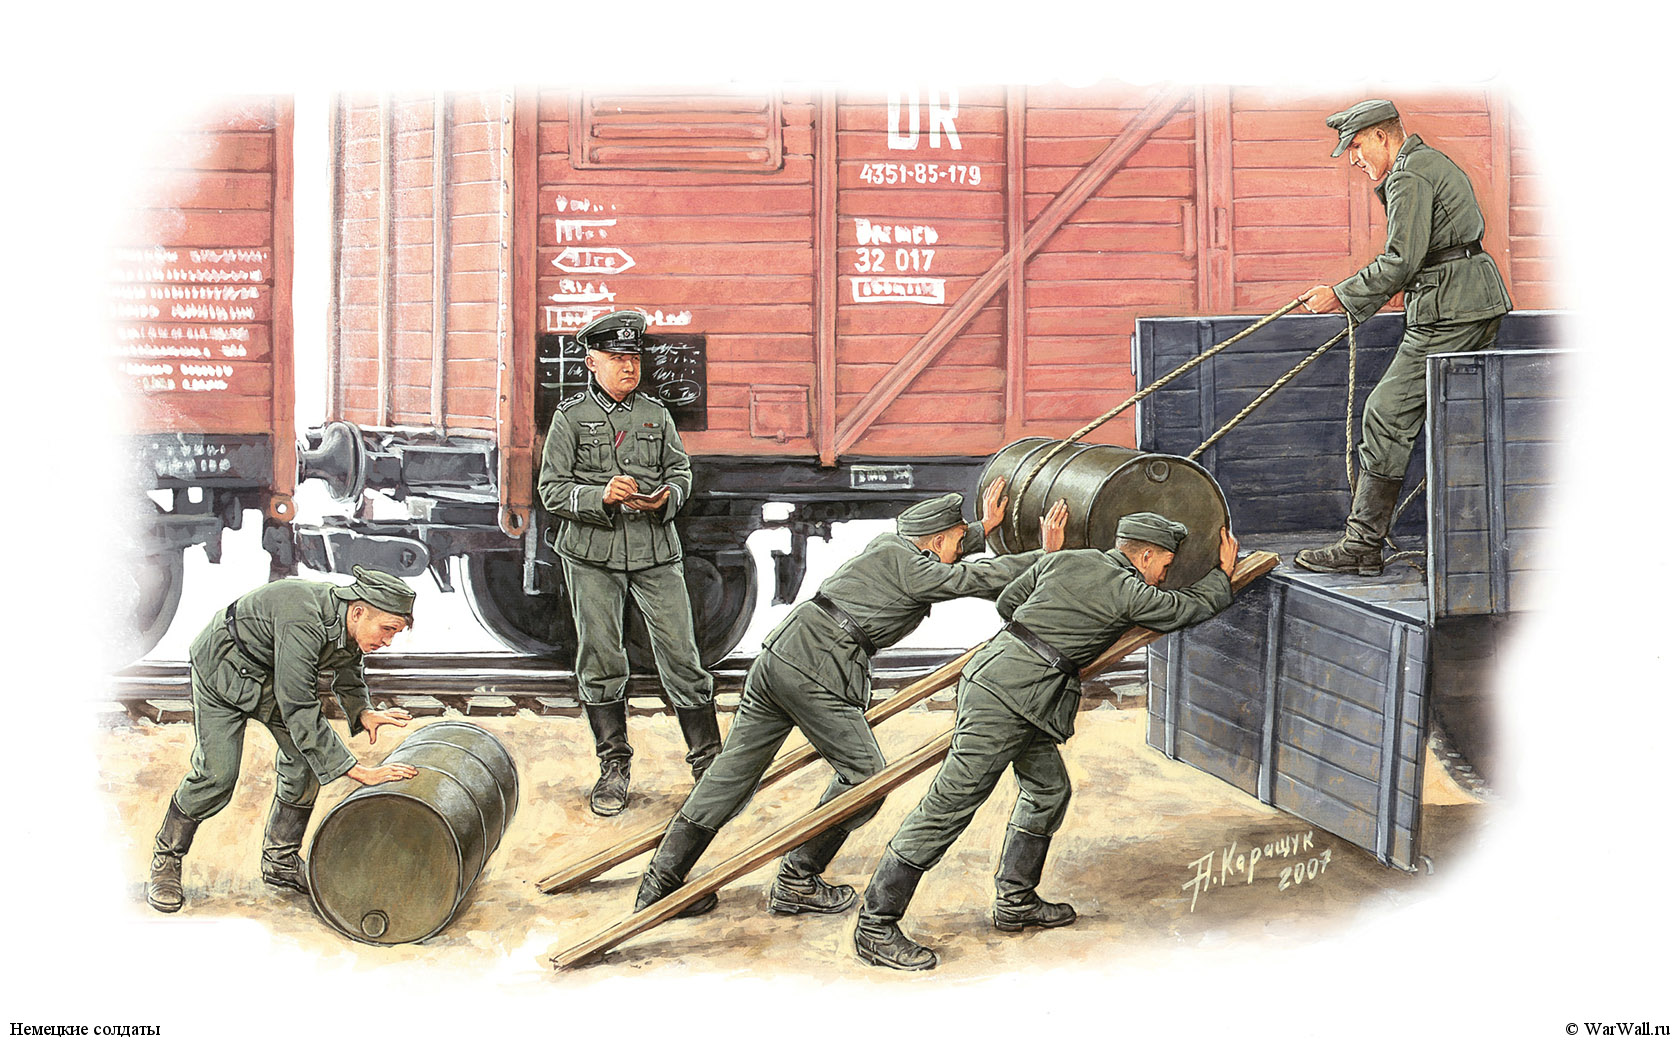 http://warwall.ru/Art/Wallpaper_2447_MiniArt_35041_German_Soldiers.jpg